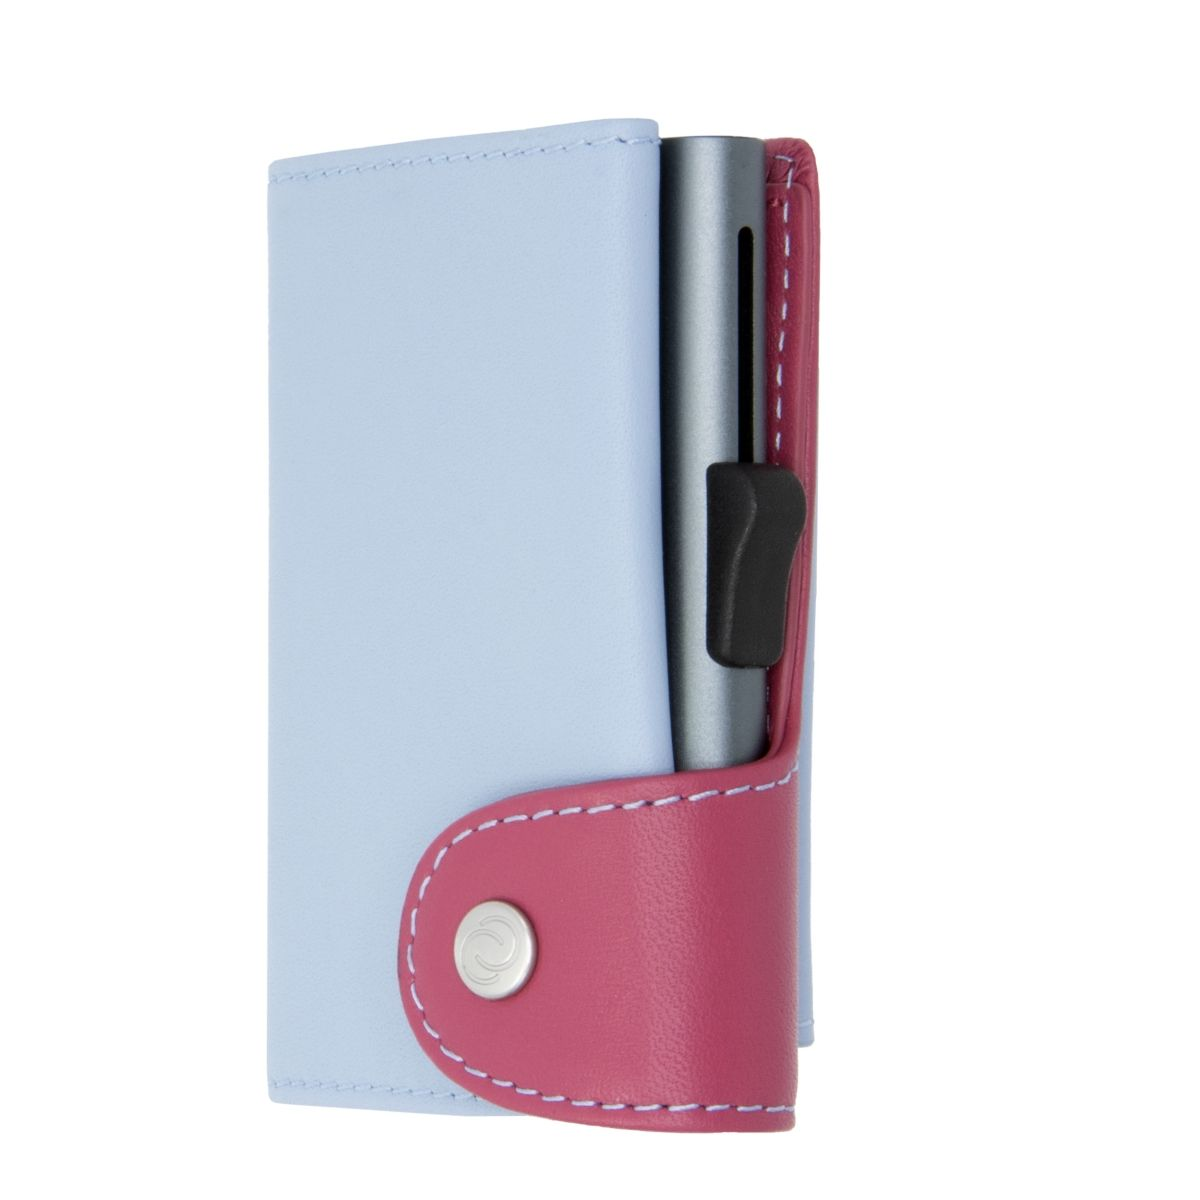 C-Secure XL Aluminum Wallet with Genuine Leather and Coins Pocket - Ice/Cherry